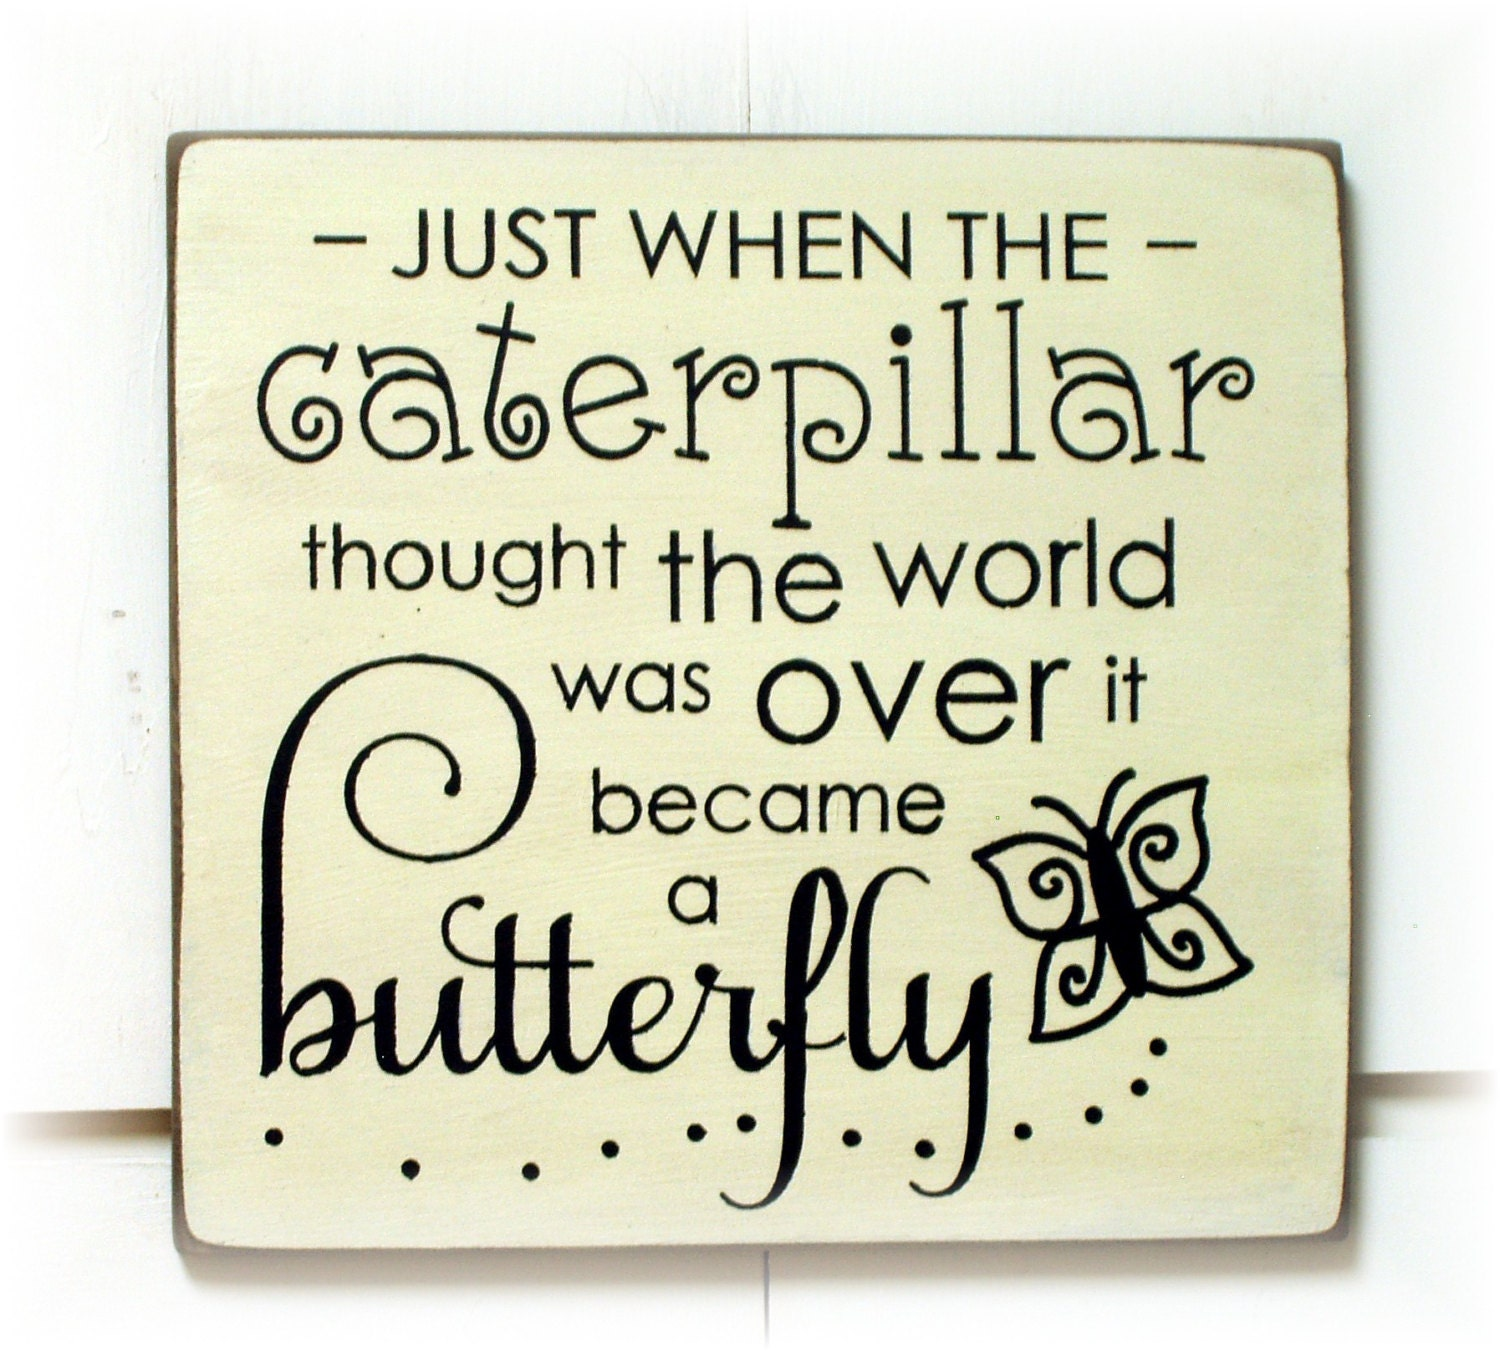 298beeb37de91 Just when the caterpillar thought the world was over it became